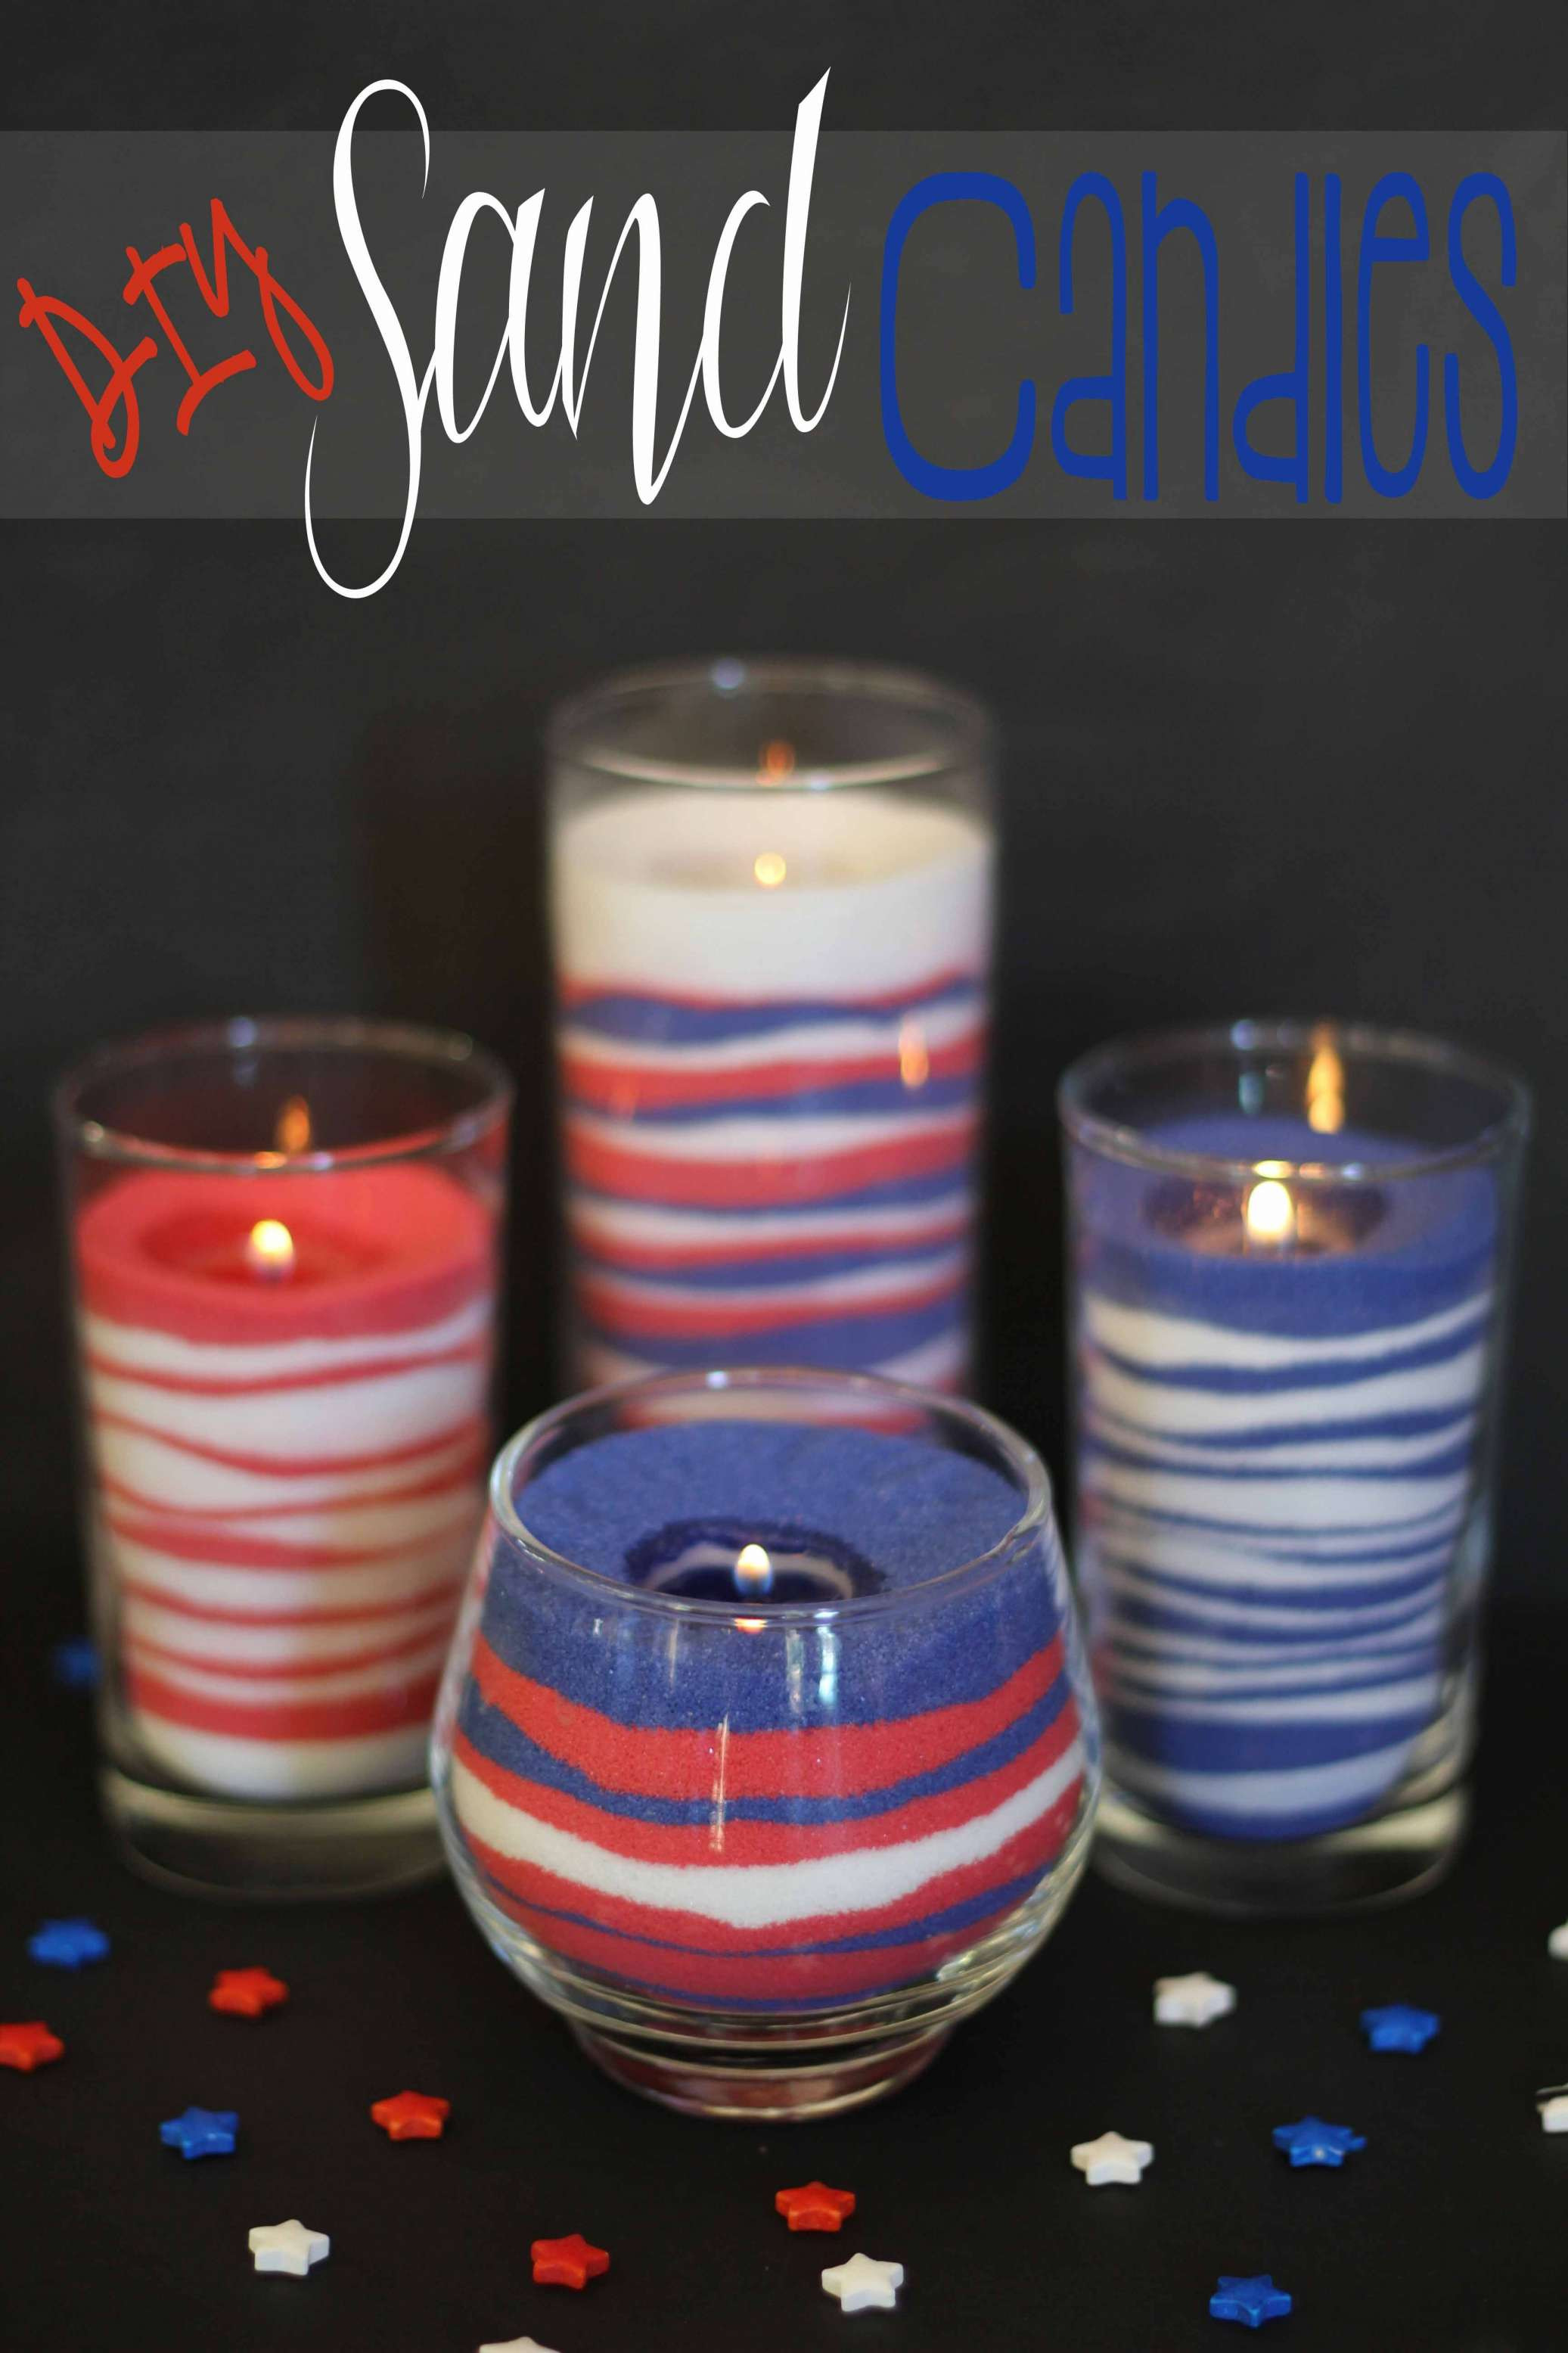 glass candle vases wholesale of diy votive candle holders luxury from diy sand candles pinterest in diy votive candle holders luxury from diy sand candles pinterest